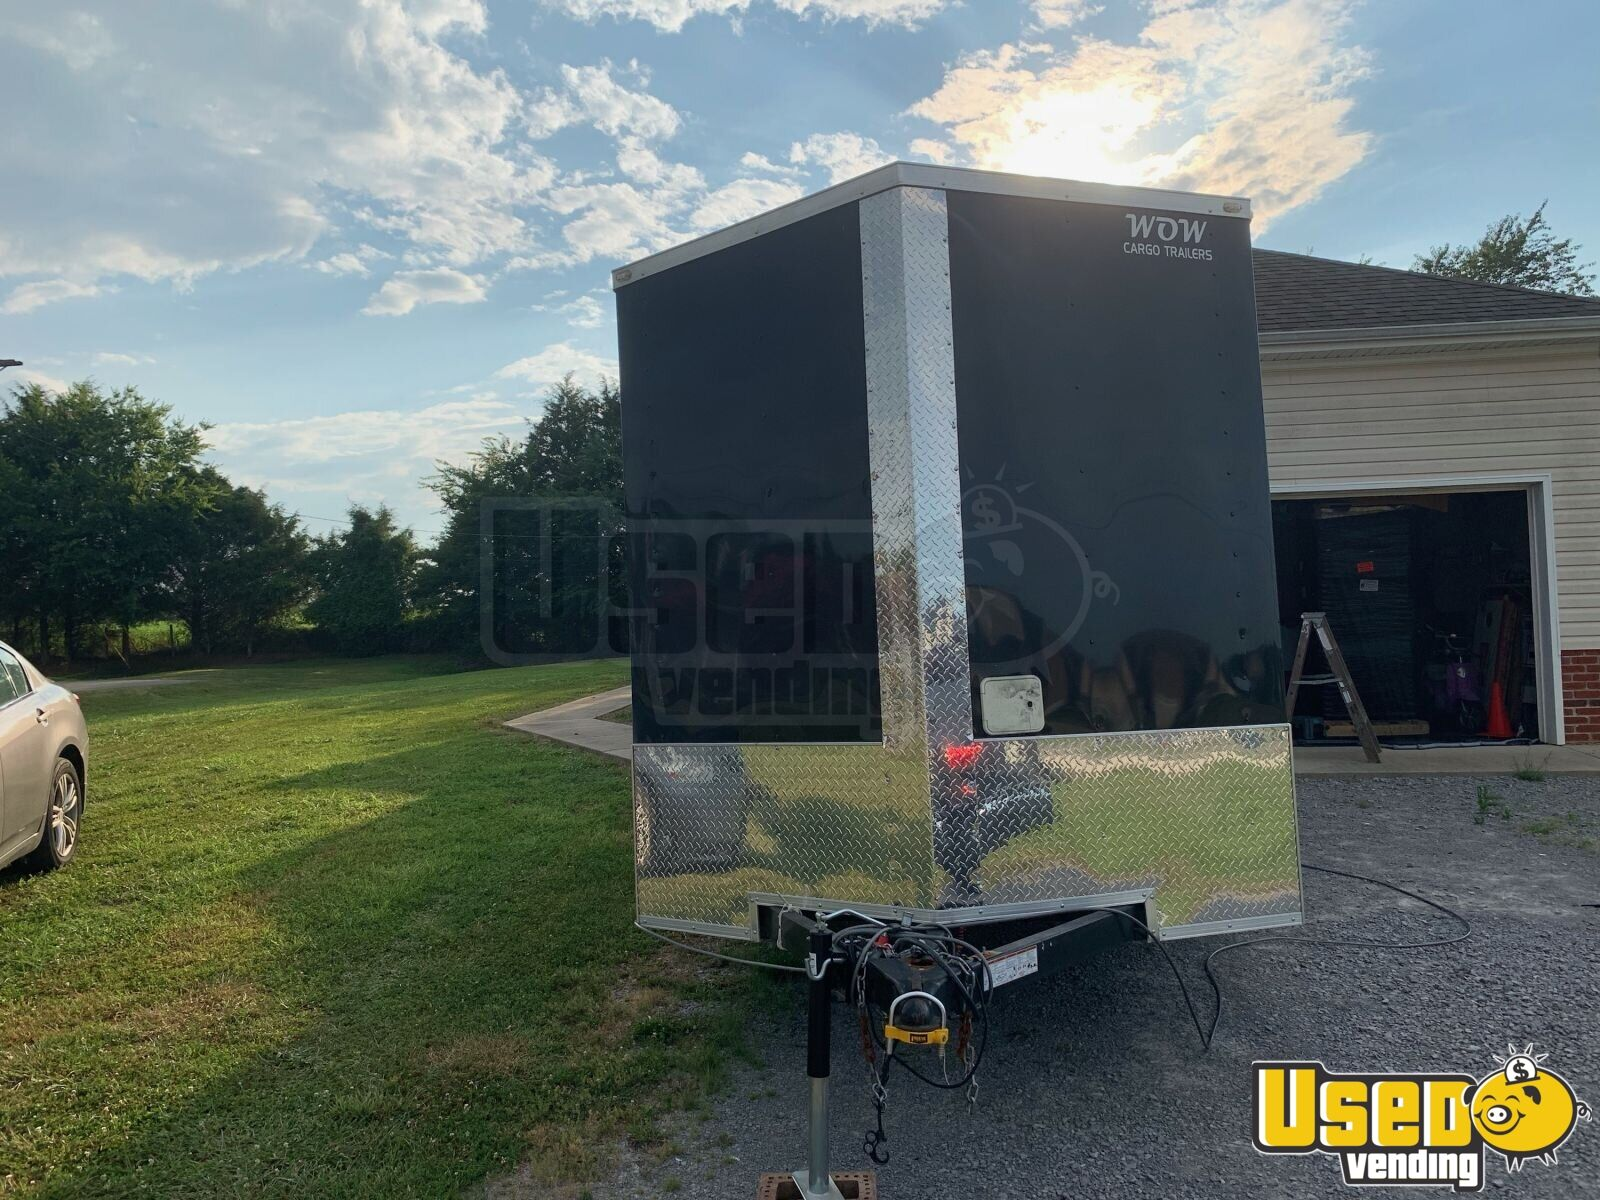 2018 Wow Cargo Trailer All-purpose Food Trailer Concession Window Tennessee for Sale - 3